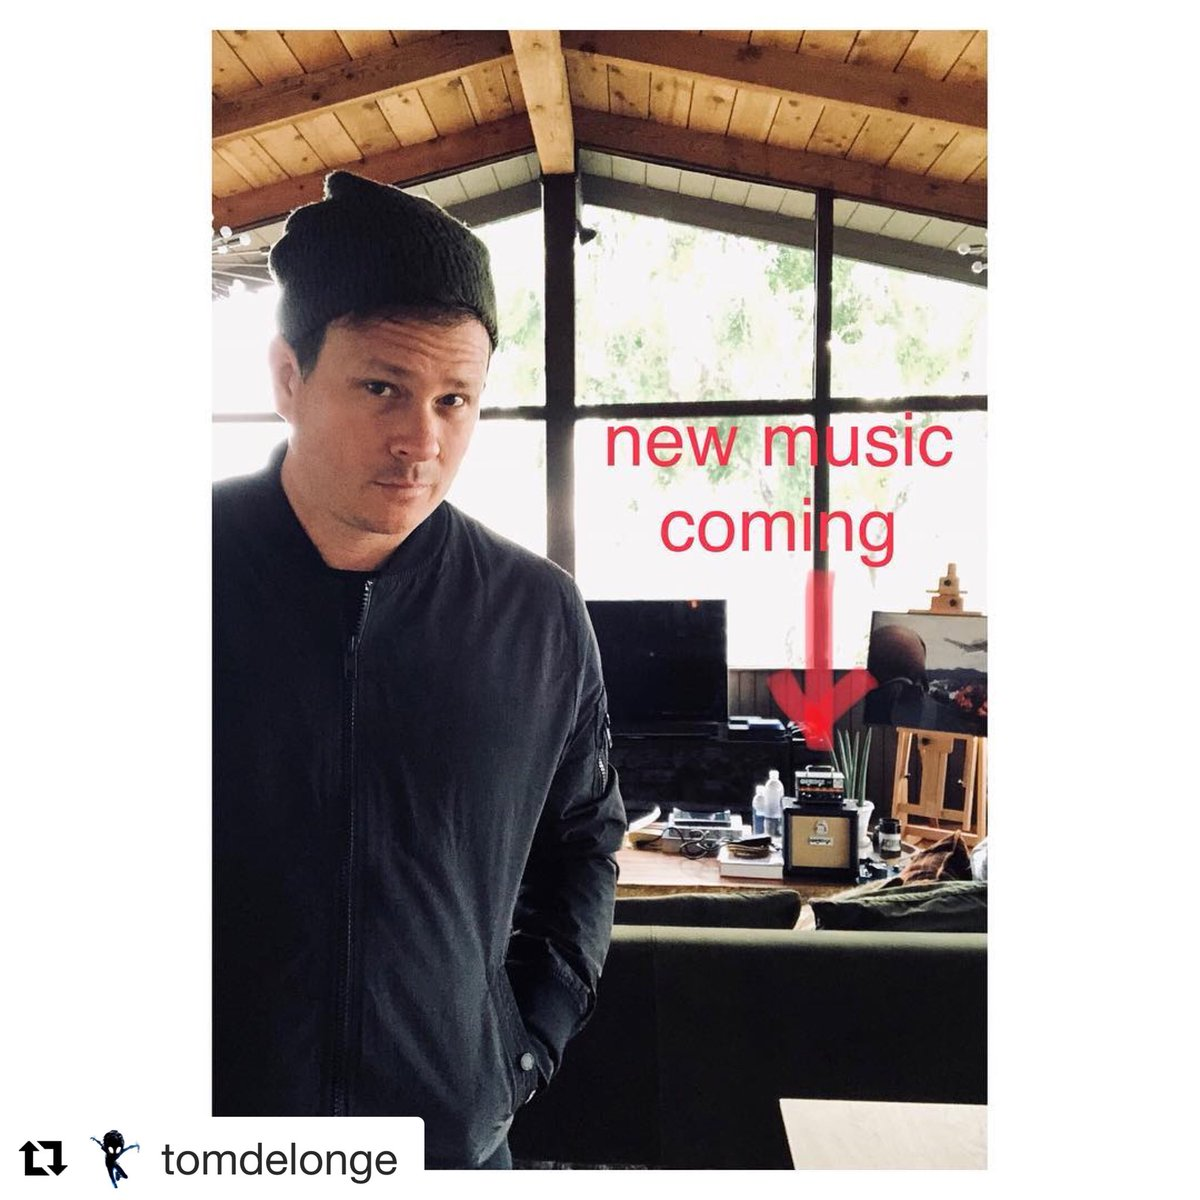 #Repost @tomdelonge | ...Just waiting for 1 piece of gear & my studio will be operational. Then, some very fast, soaring AVA music to go w the Strange Times Film... I have a feeling this will be a hallmark album for me... instagram.com/p/Bg_wnI9na3e/